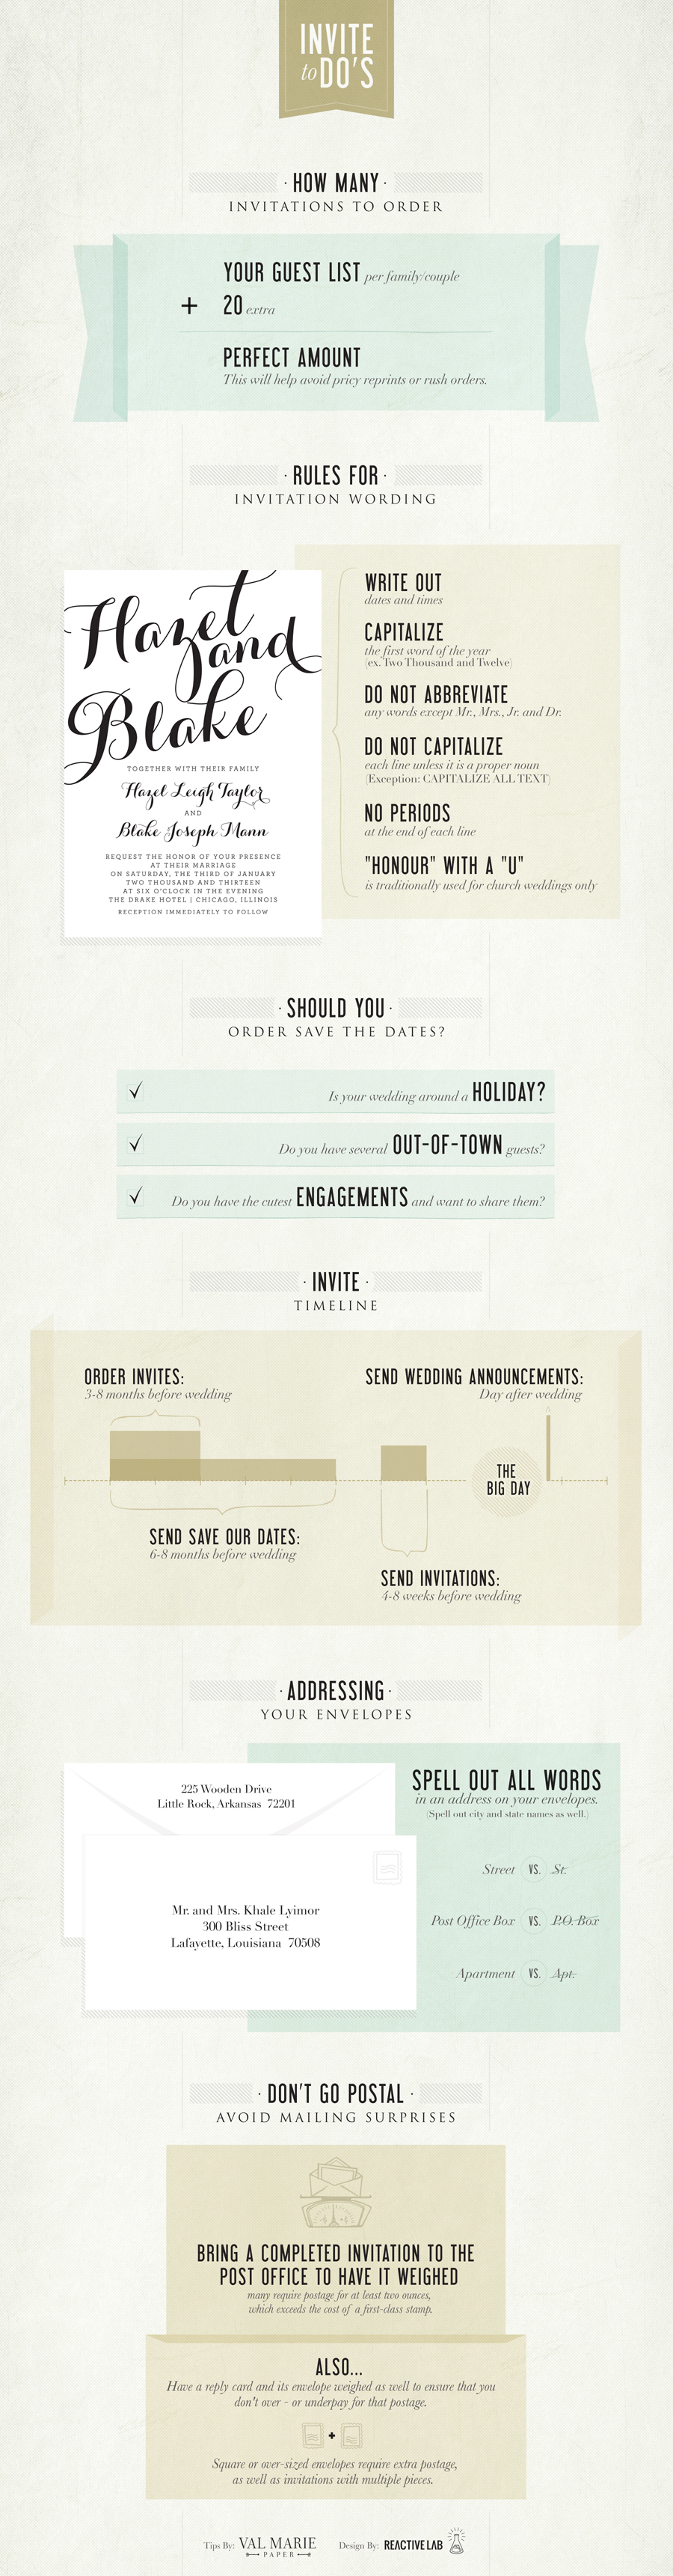 Wedding Invitation Infographic from Every Last Detail on Squirrelly Minds